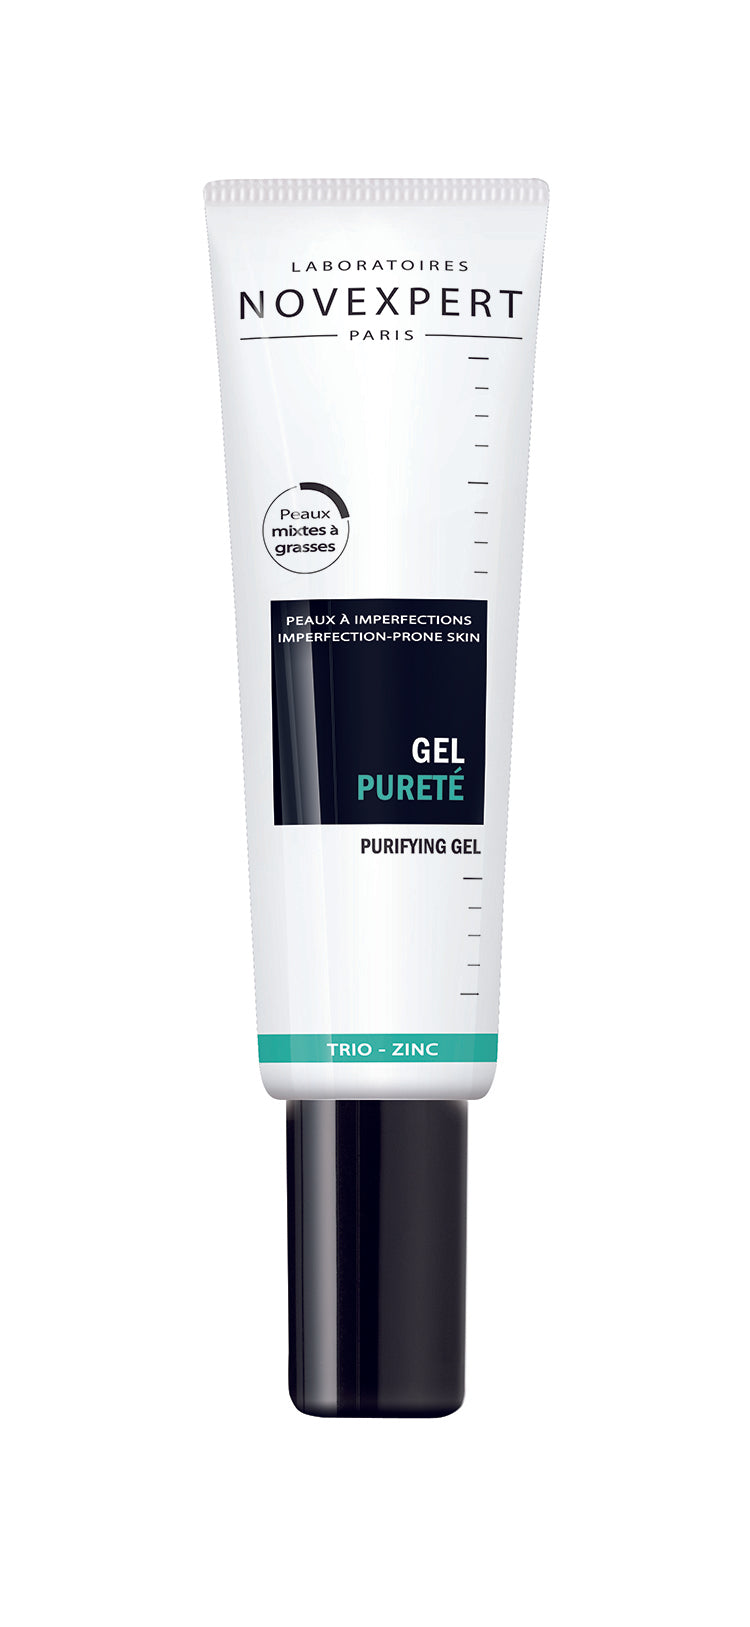 Novexpert Purifying Gel – 30mlCosmetics Online IE